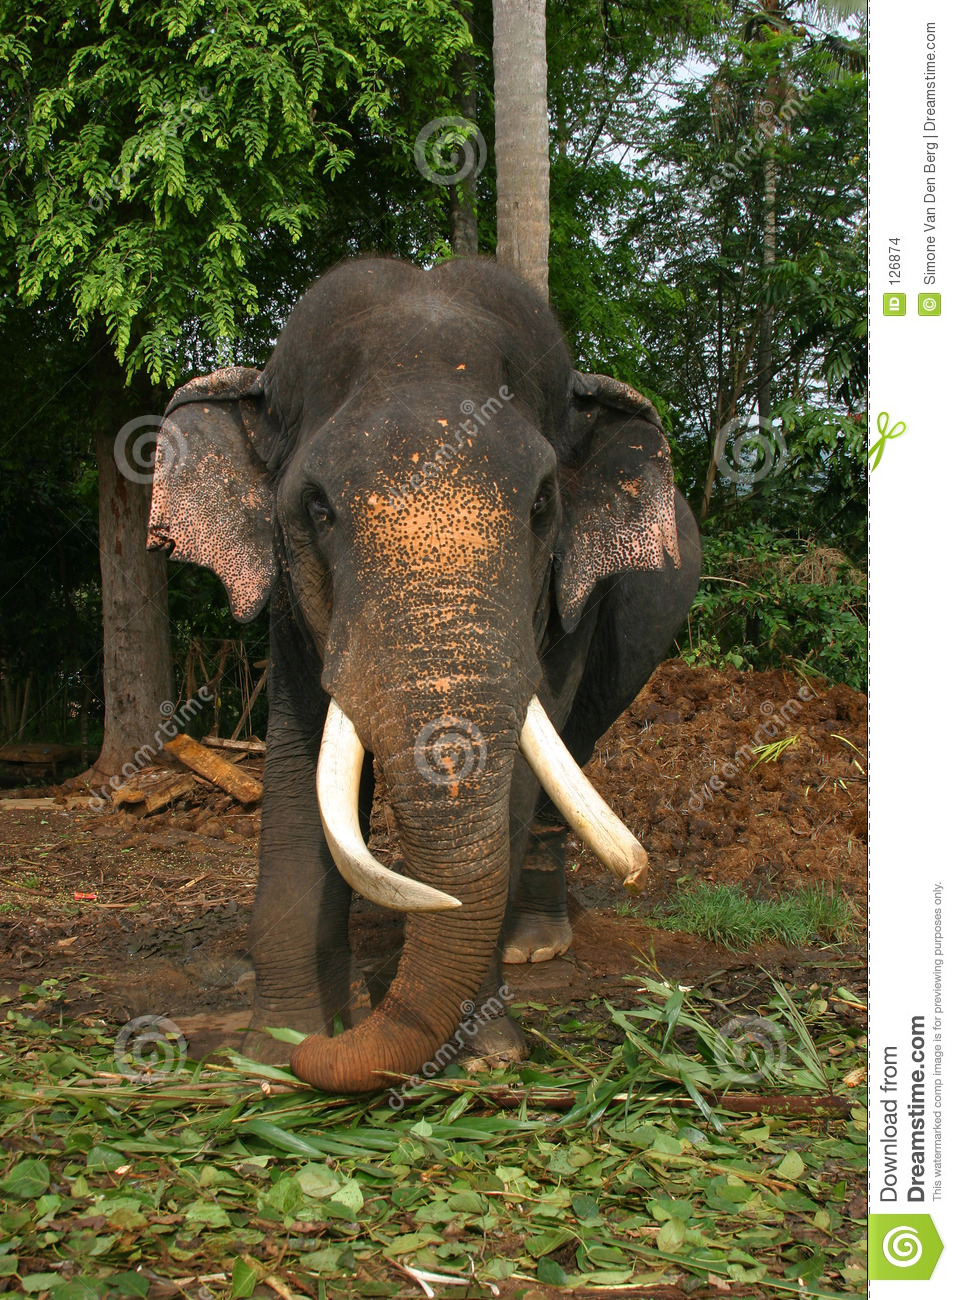 Black Animal Print Wallpaper Elephant Sri Lanka Stock Images Image 126874